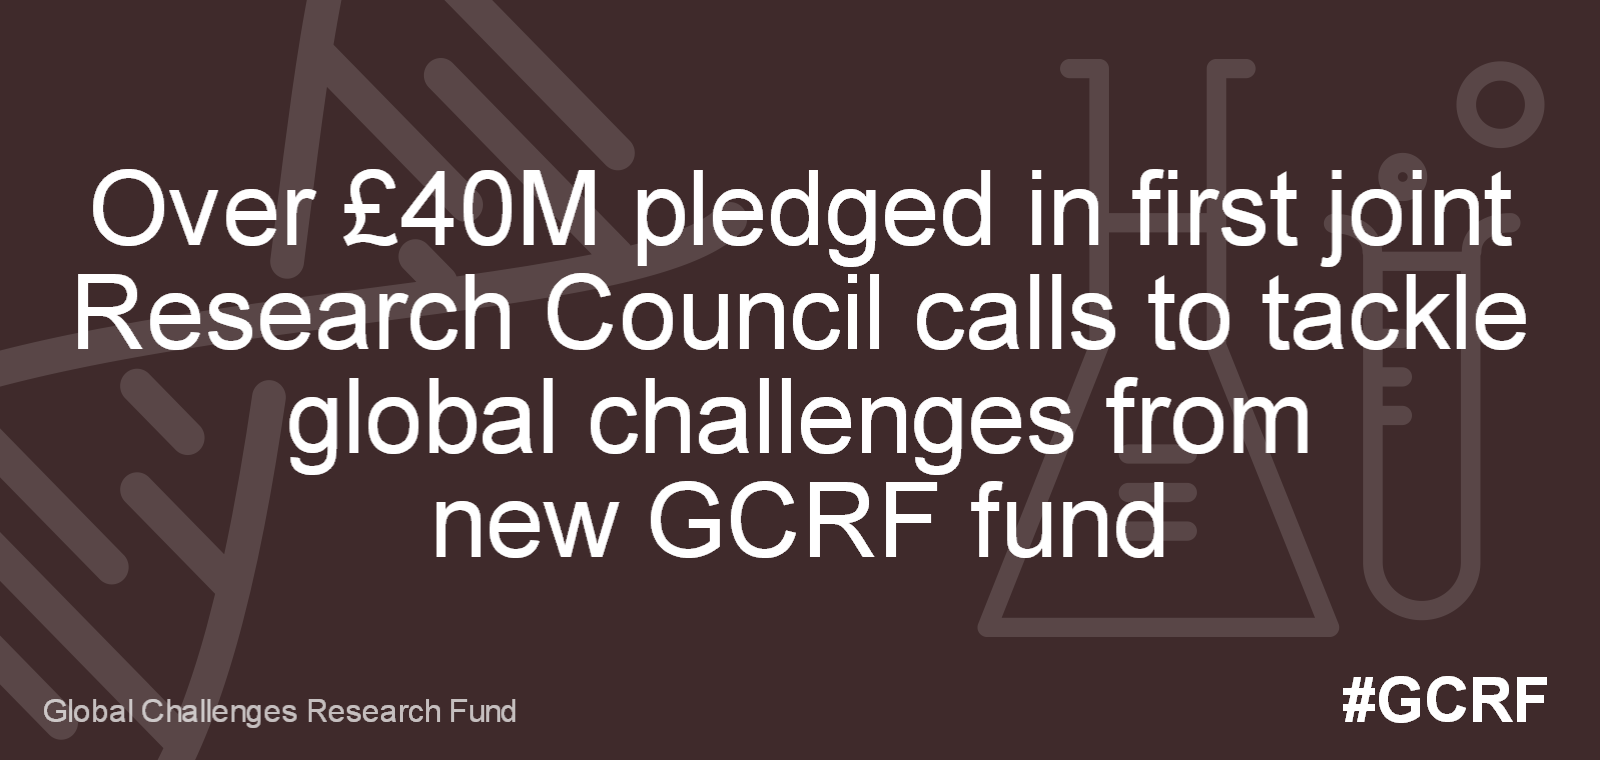 Over £40M pledged in first joint Research Council calls to tackle global challenges from new GCRF fund